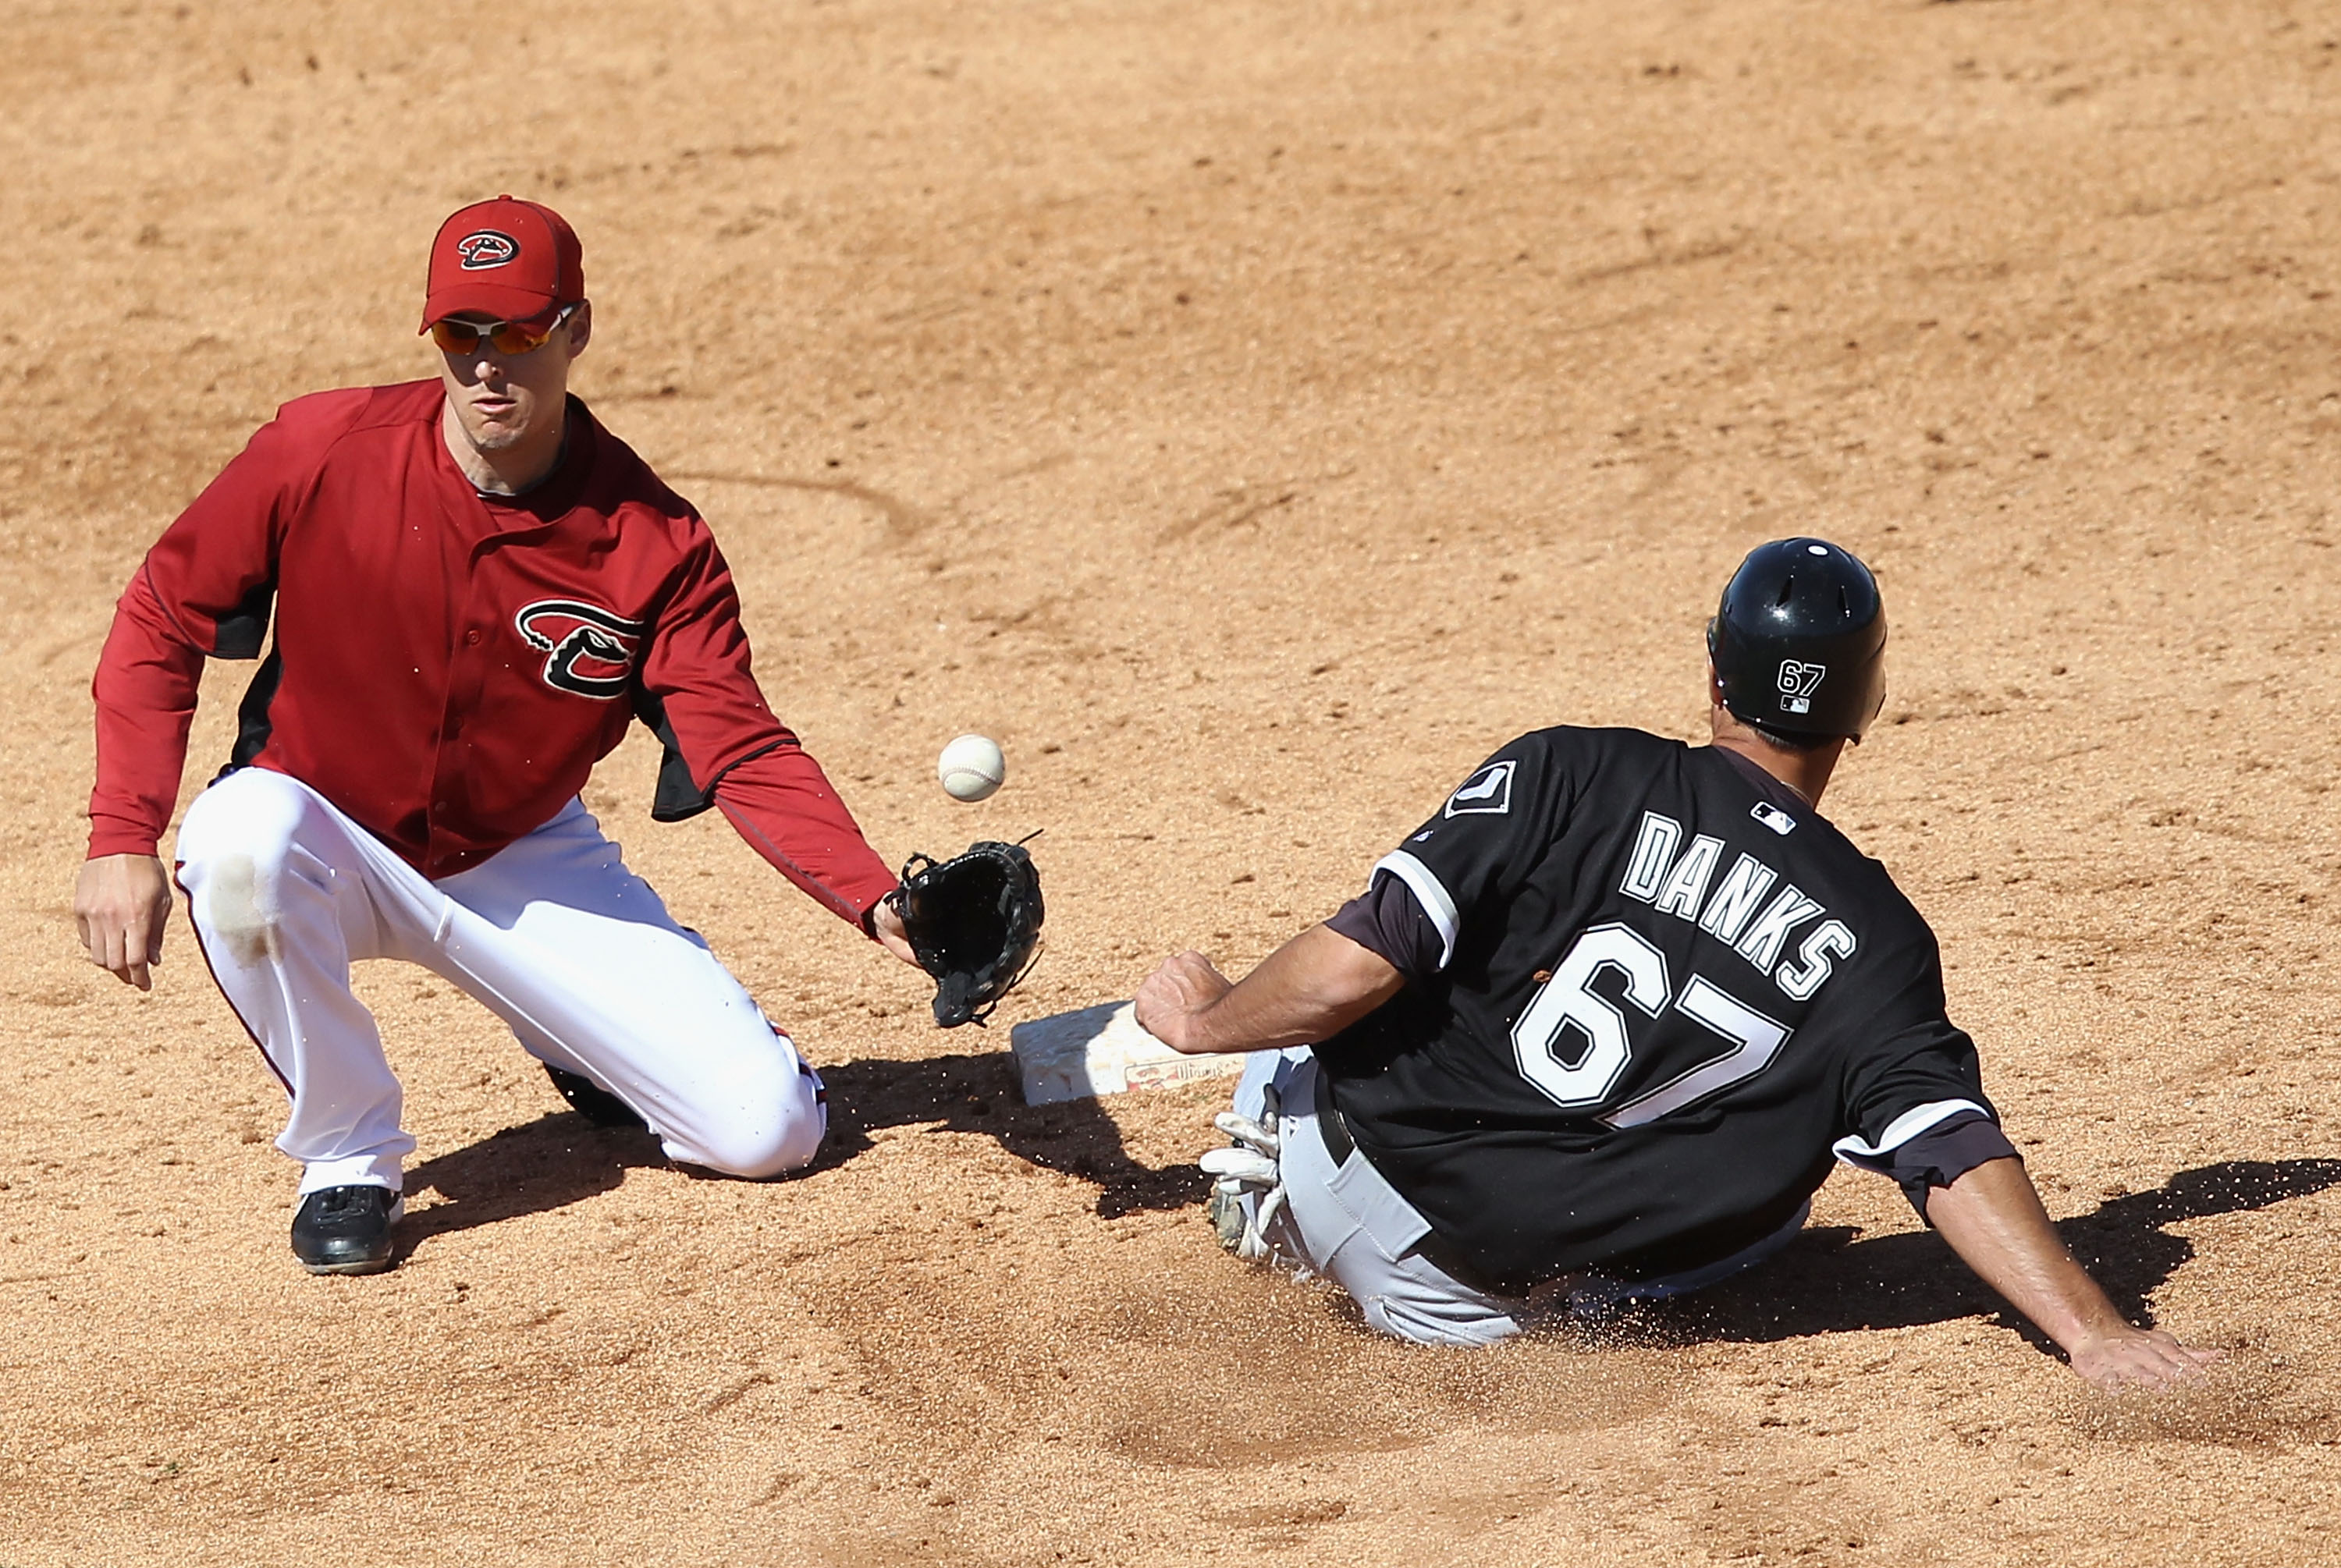 TUCSON, AZ - MARCH 07:  Jordan Danks #67 of the Chicago White Sox safely steals second base past infielder Kelly Johnson #2 of the Arizona Diamondbacks during the fifth inning of the spring training game at Kino Veterans Memorial Stadium on March 7, 2011